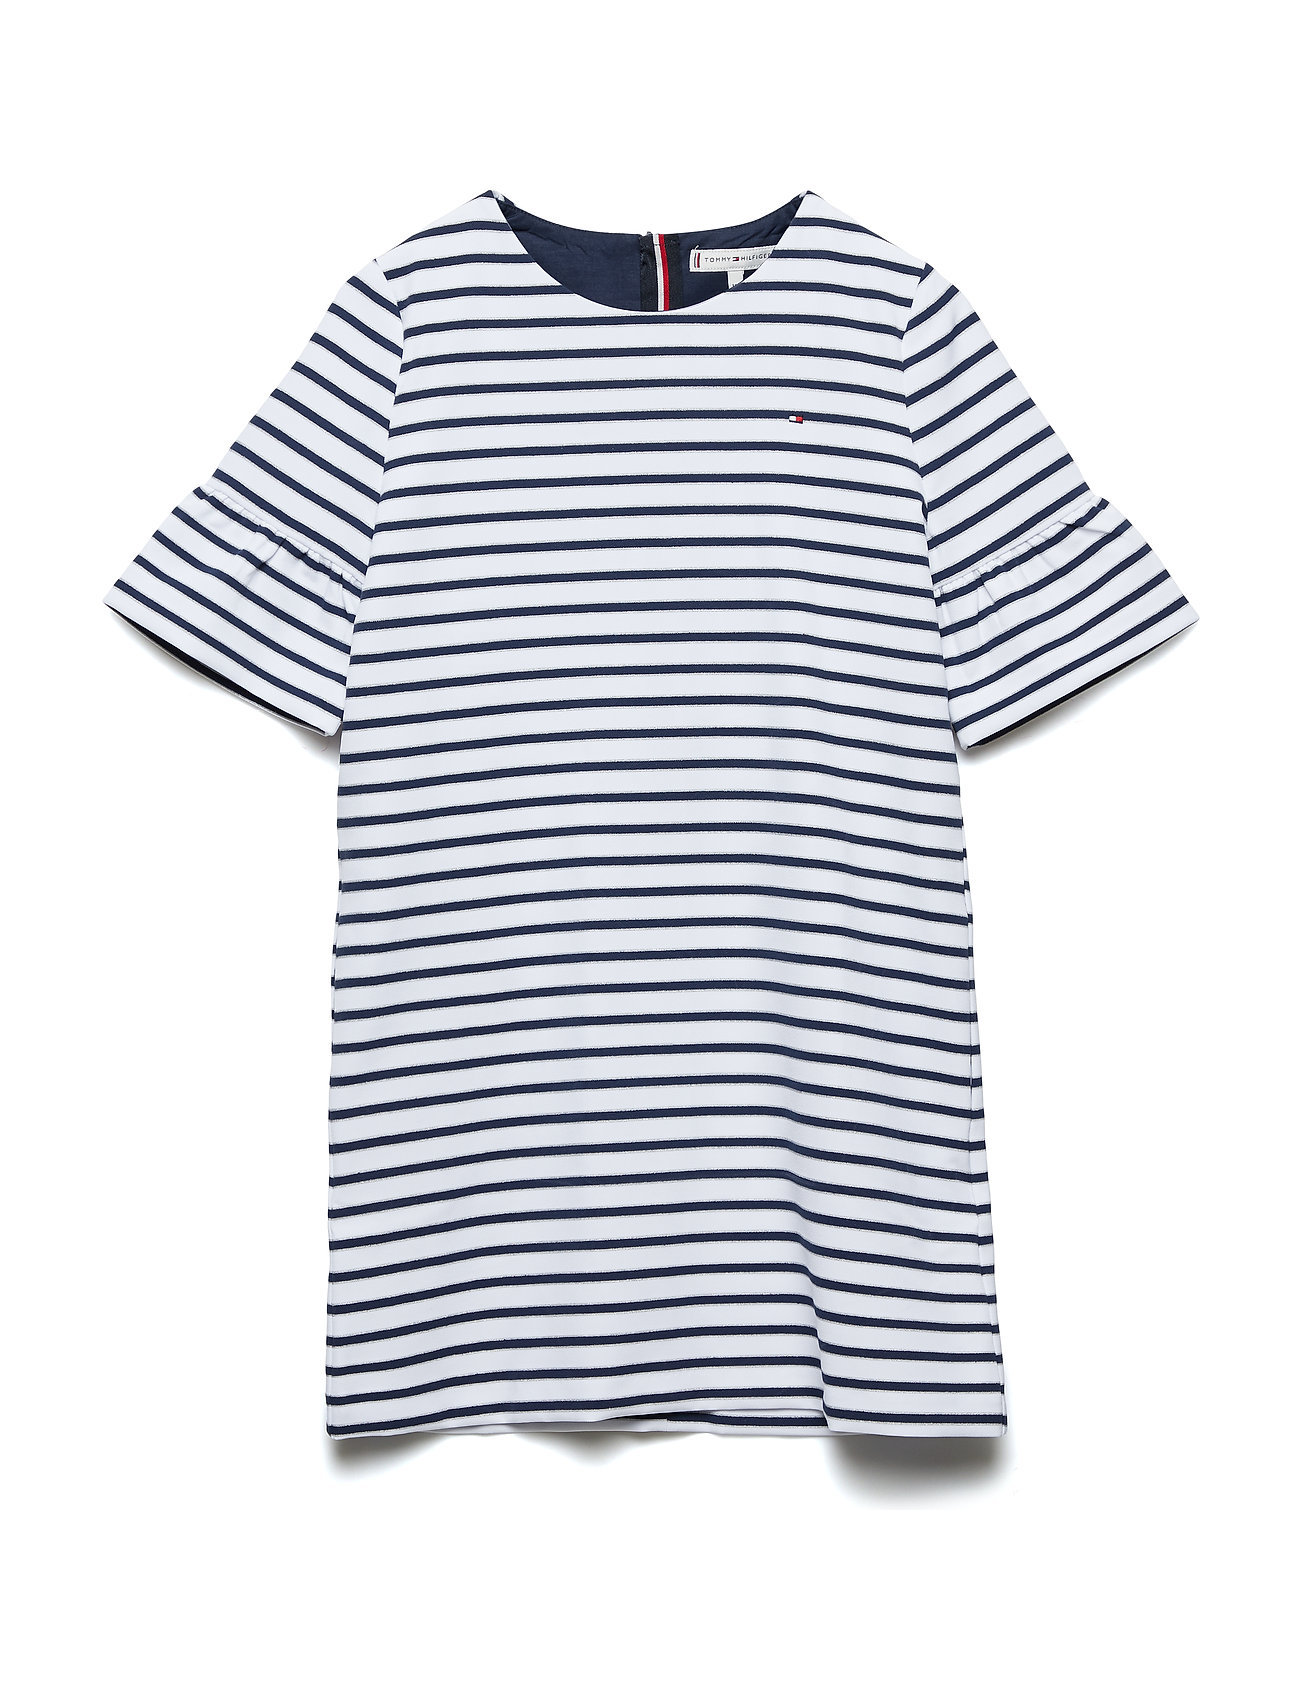 Tommy Hilfiger ESSENTIAL STRIPE SHI - BLACK IRIS/BRIGHT WHITE